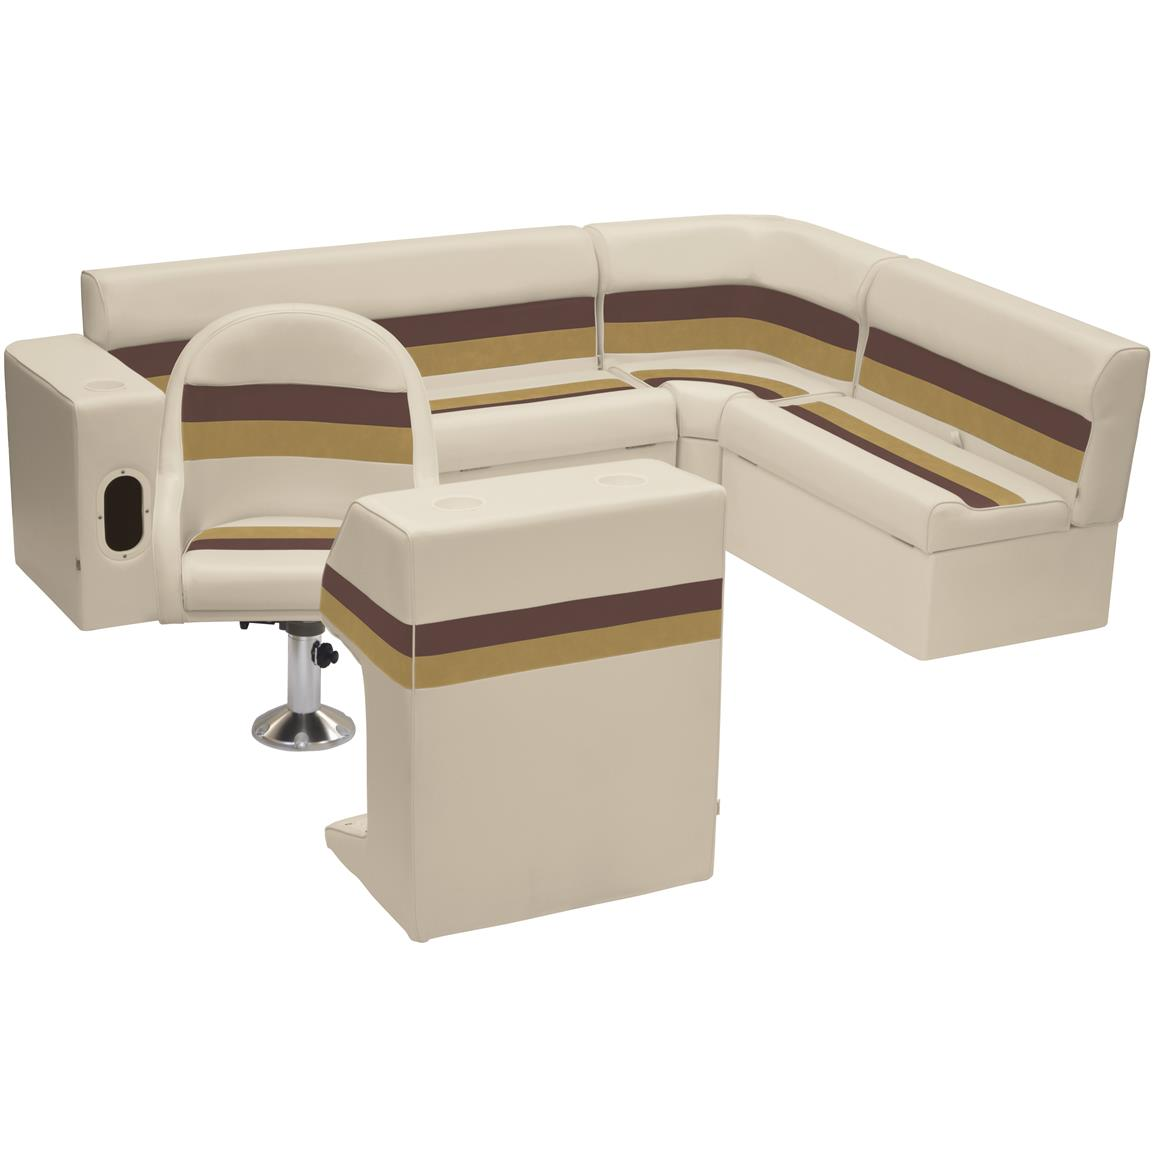 Wise® Deluxe Pontoon Complete Rear Seating Group, Color C: Sand / Chestnut / Gold